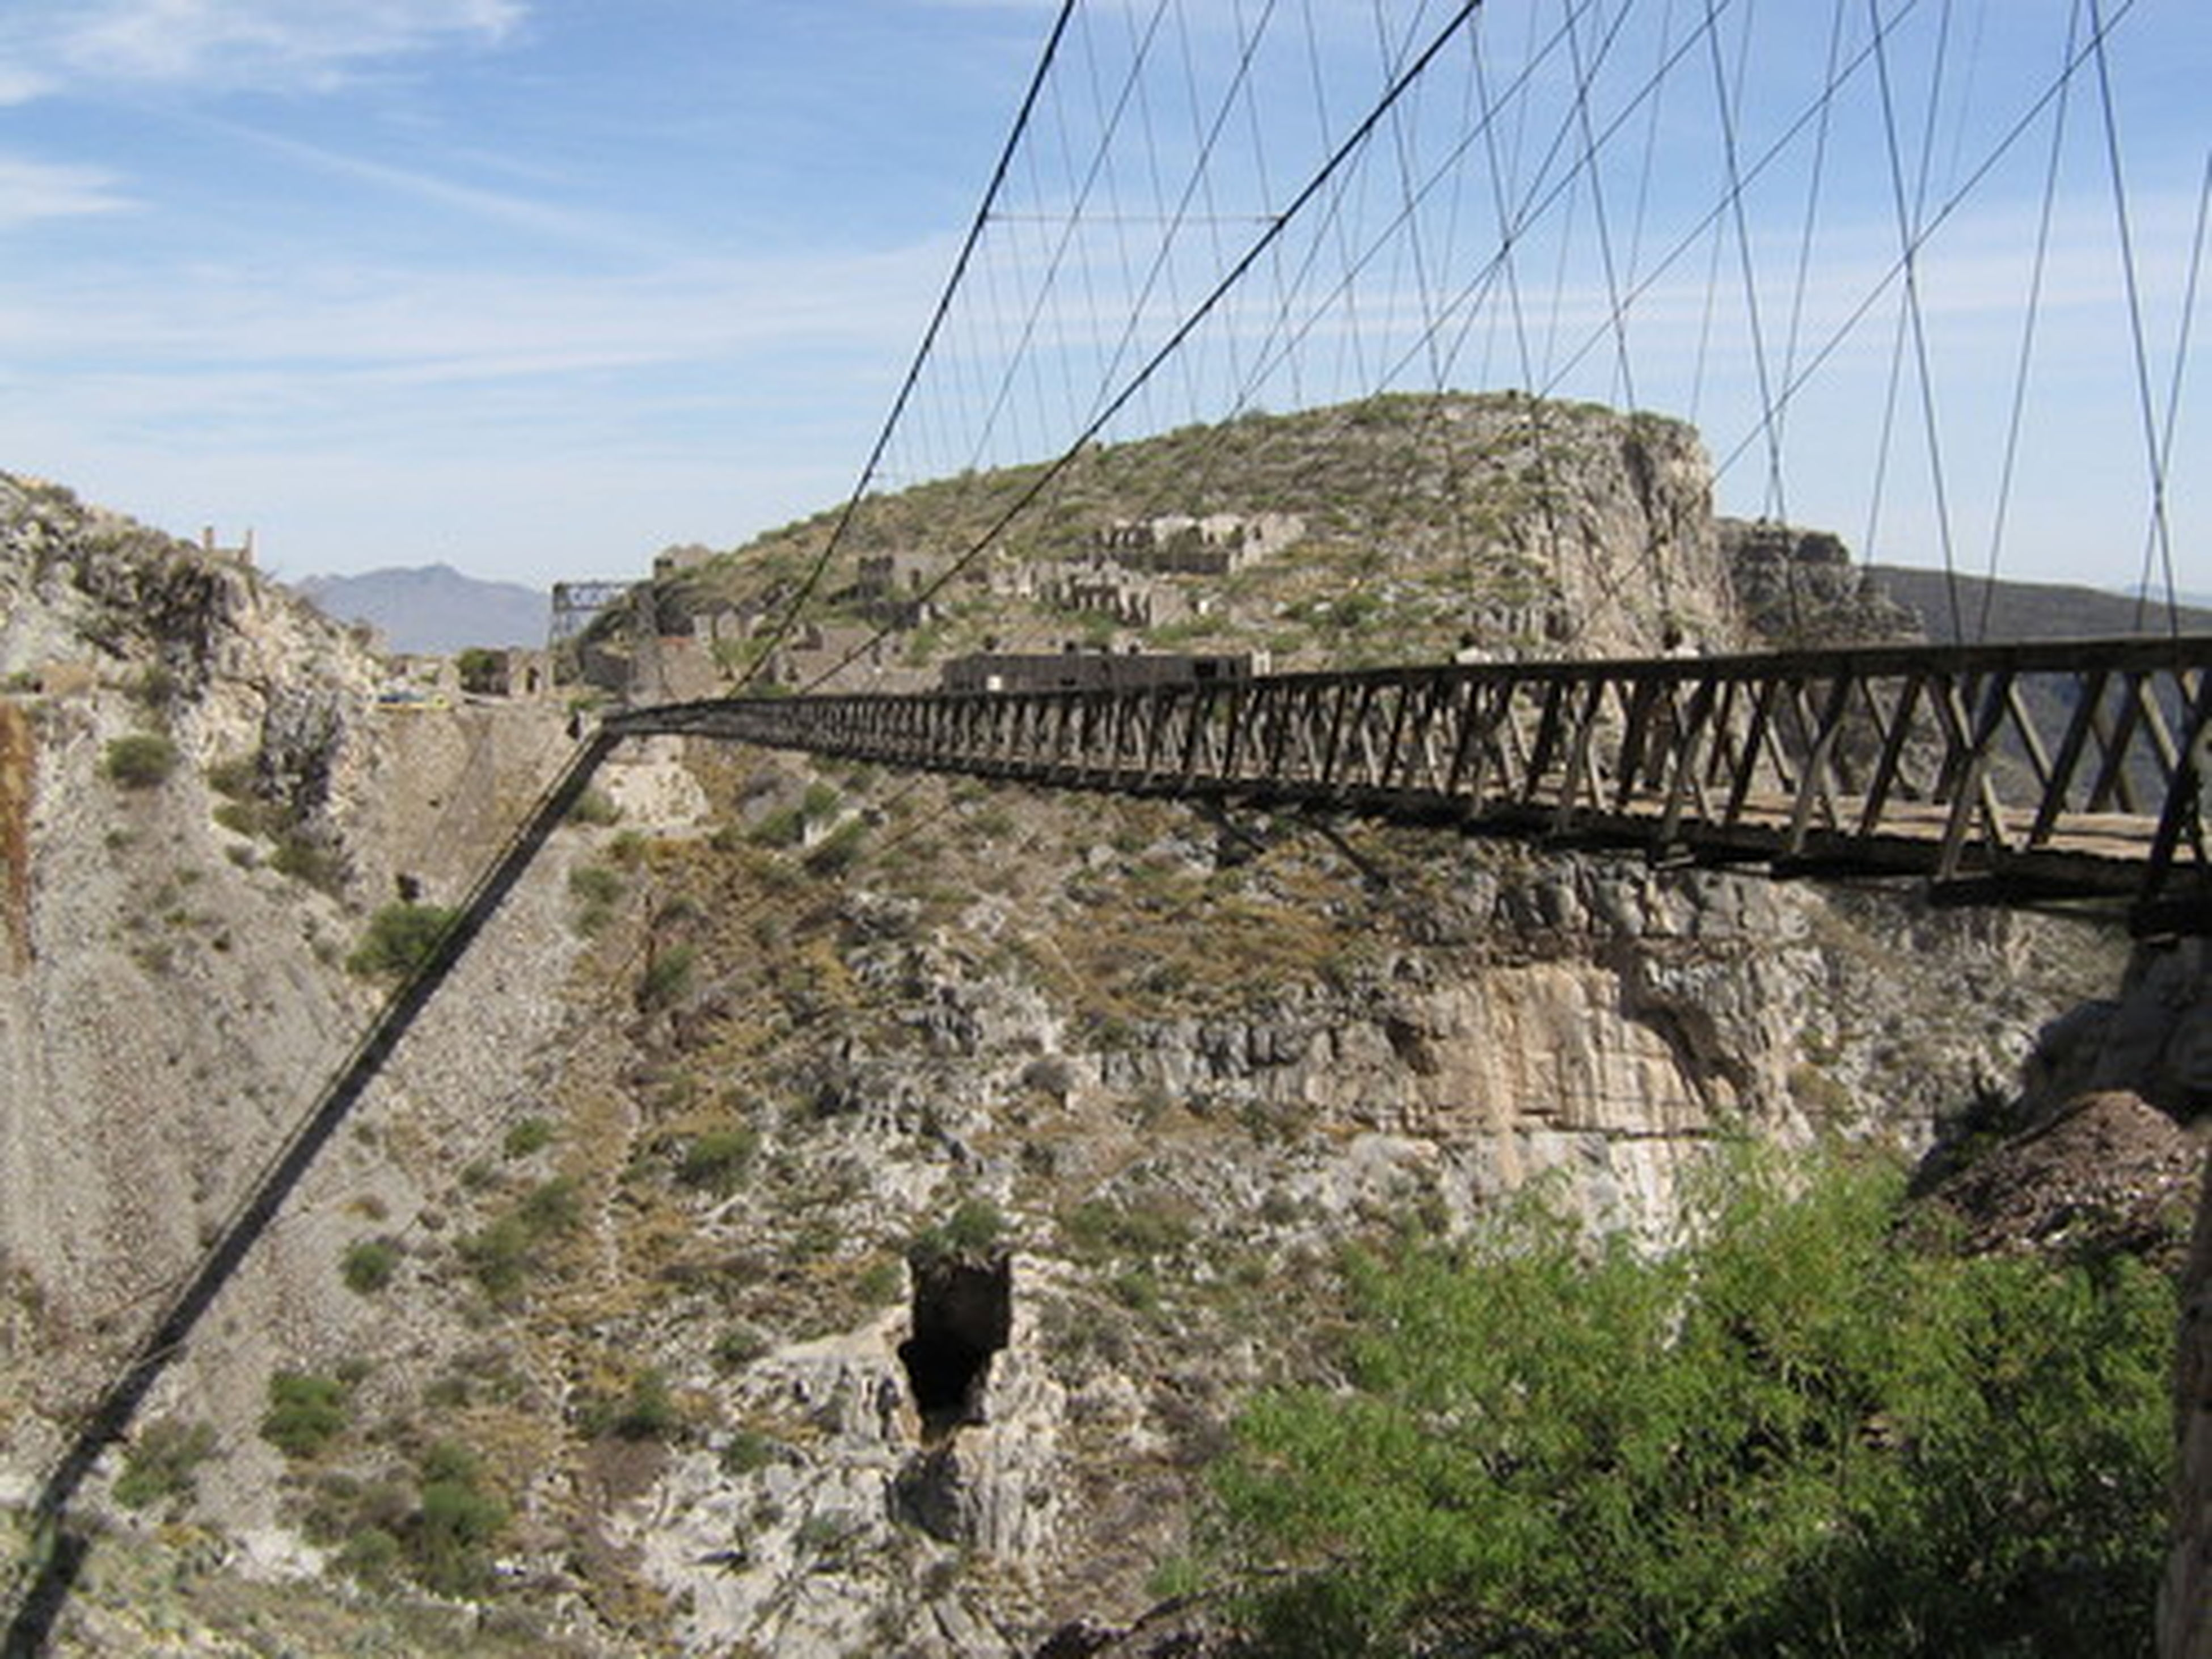 connection, built structure, architecture, mountain, bridge - man made structure, sky, rock - object, low angle view, engineering, transportation, electricity pylon, cable, power line, suspension bridge, day, bridge, rock formation, mountain range, landscape, no people